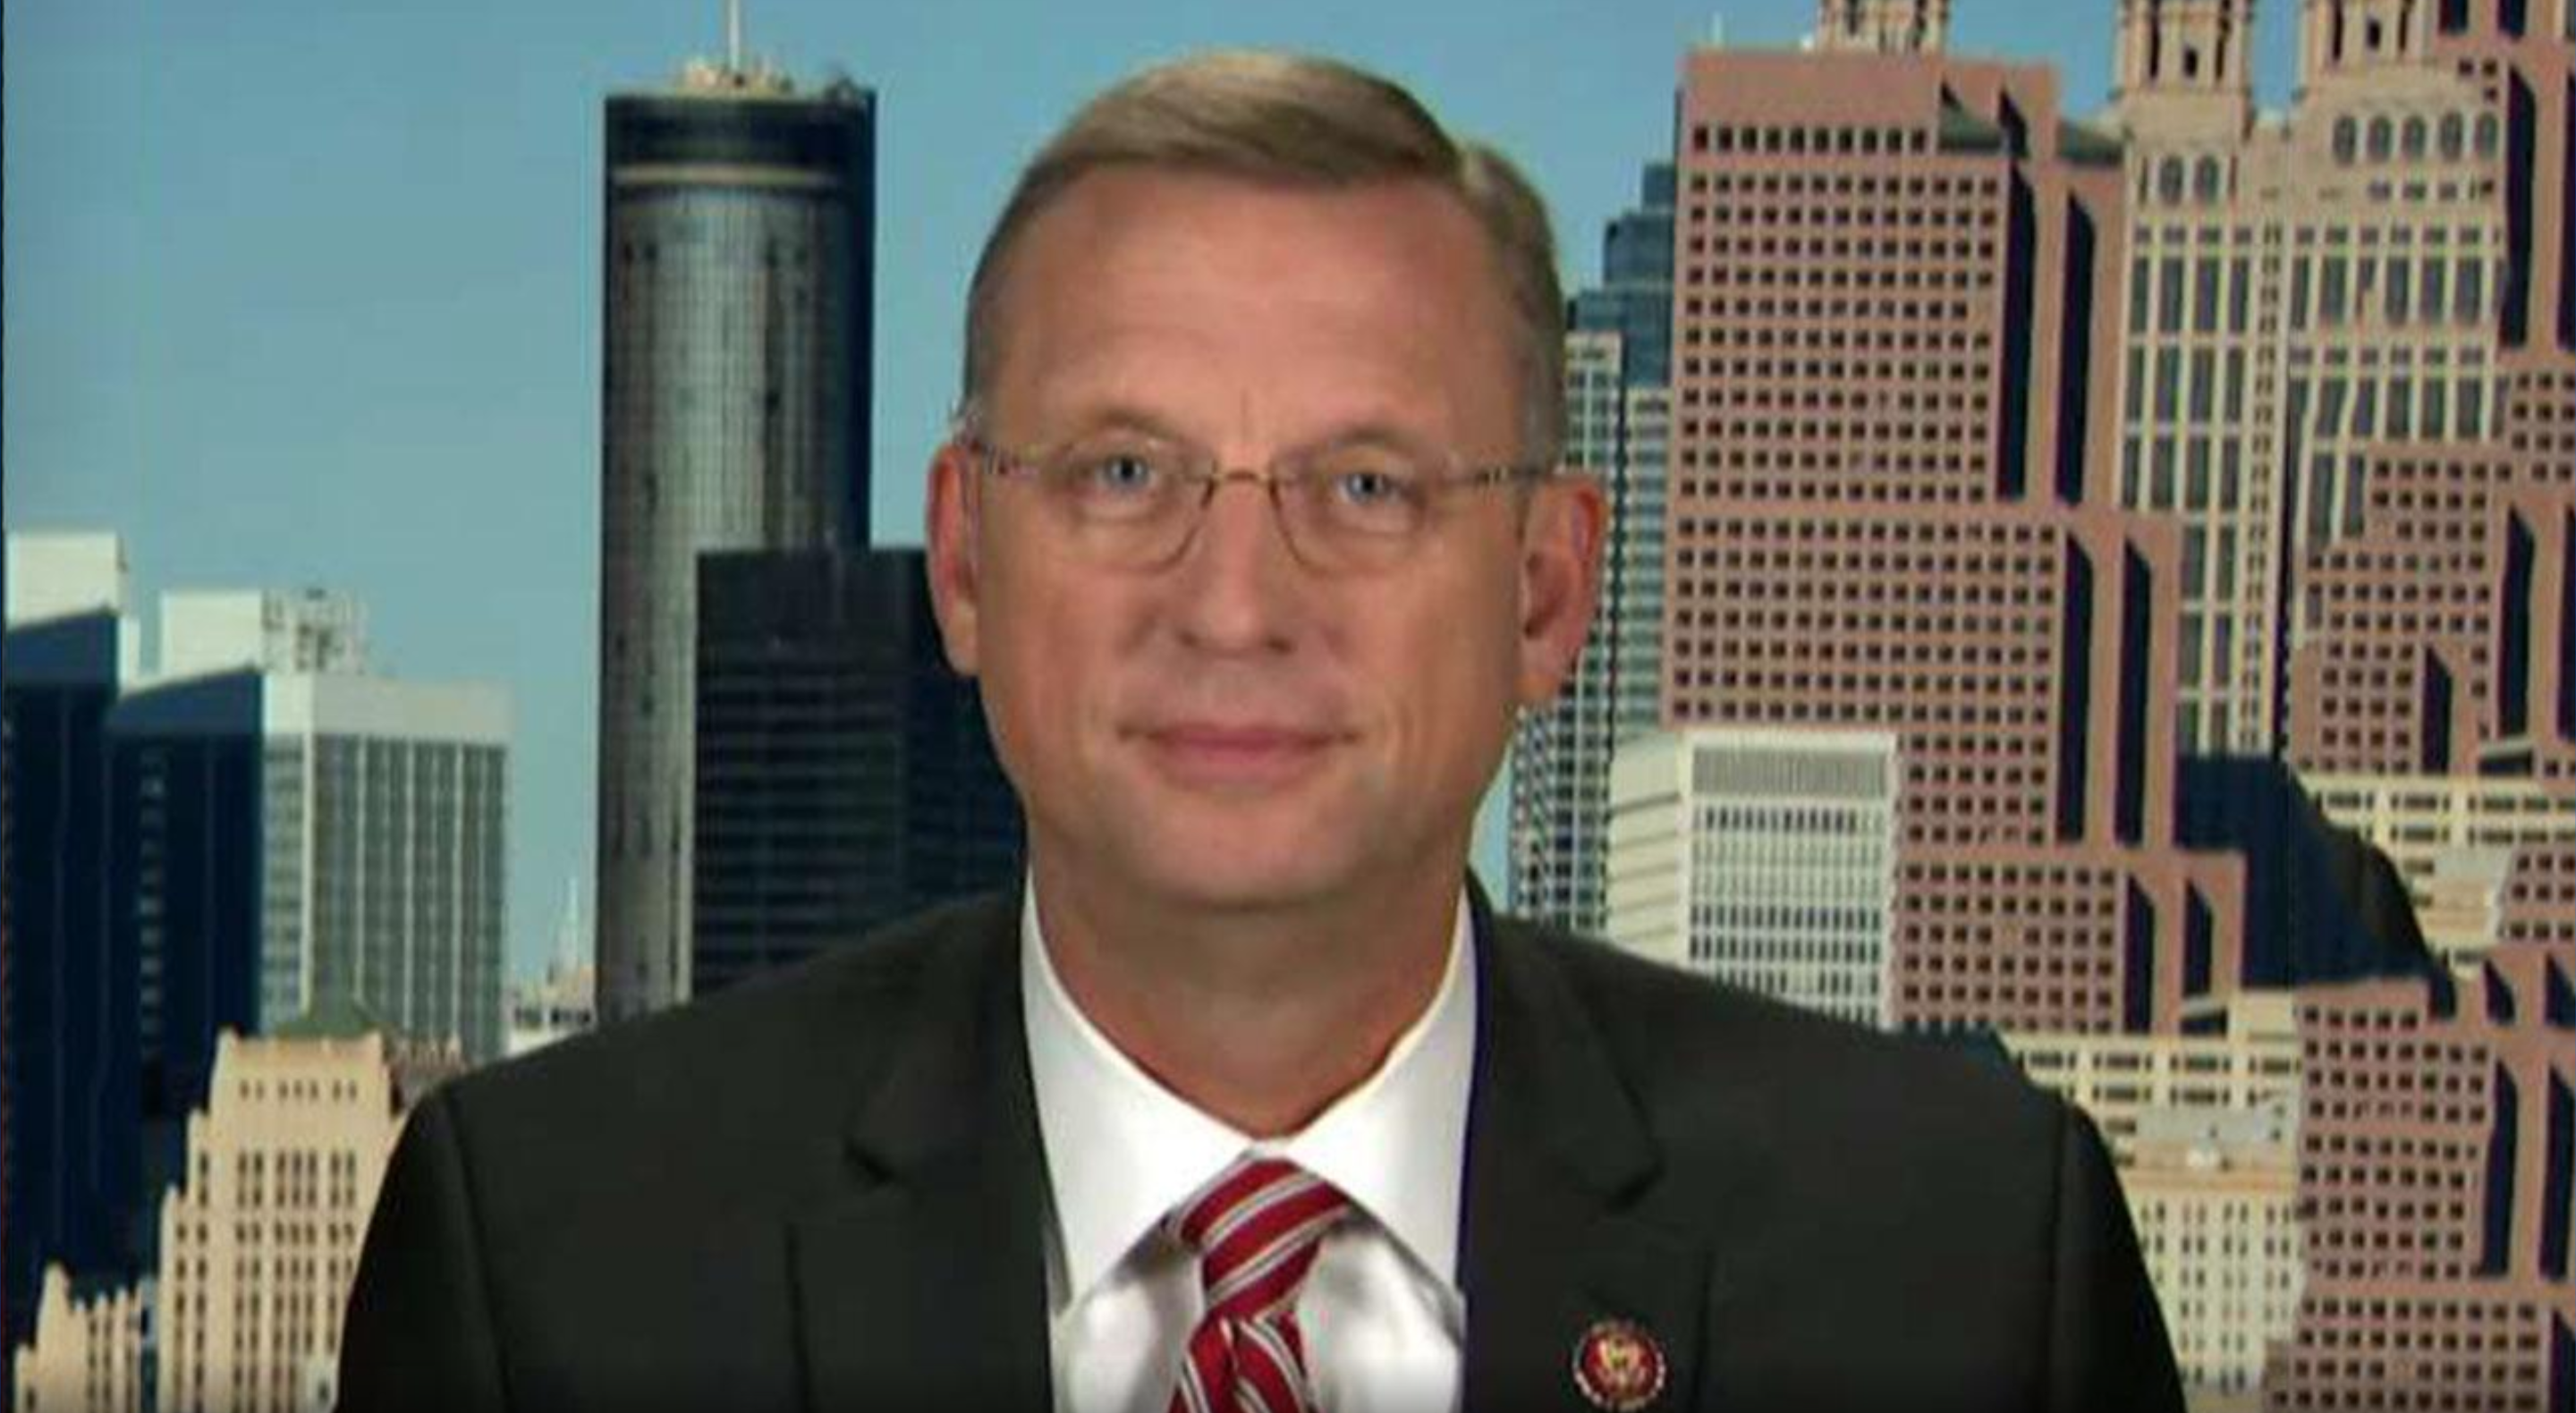 Westlake Legal Group Screen-Shot-2019-09-06-at-2.02.49-PM Rep. Doug Collins on retail stores banning open carry: 'Just because it feels good, doesn't mean it heals you' Joshua Nelson fox-news/shows/outnumbered-overtime fox-news/media/fox-news-flash fox news fnc/media fnc e2642813-55d7-53e5-80e2-c4c554d0e6ba article